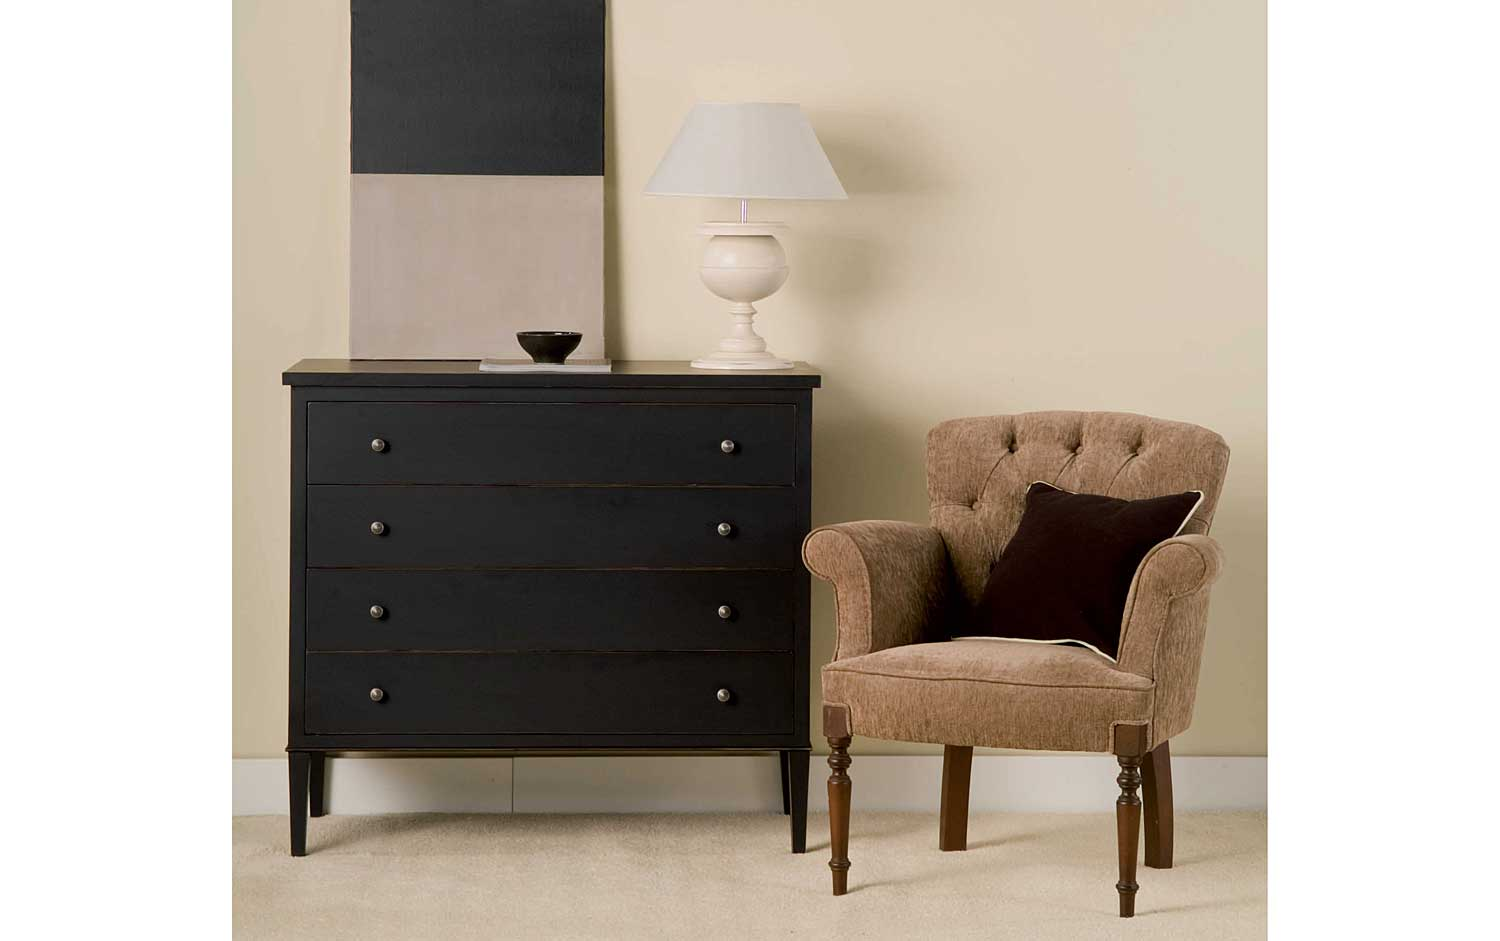 c moda vintage dijon negra en. Black Bedroom Furniture Sets. Home Design Ideas